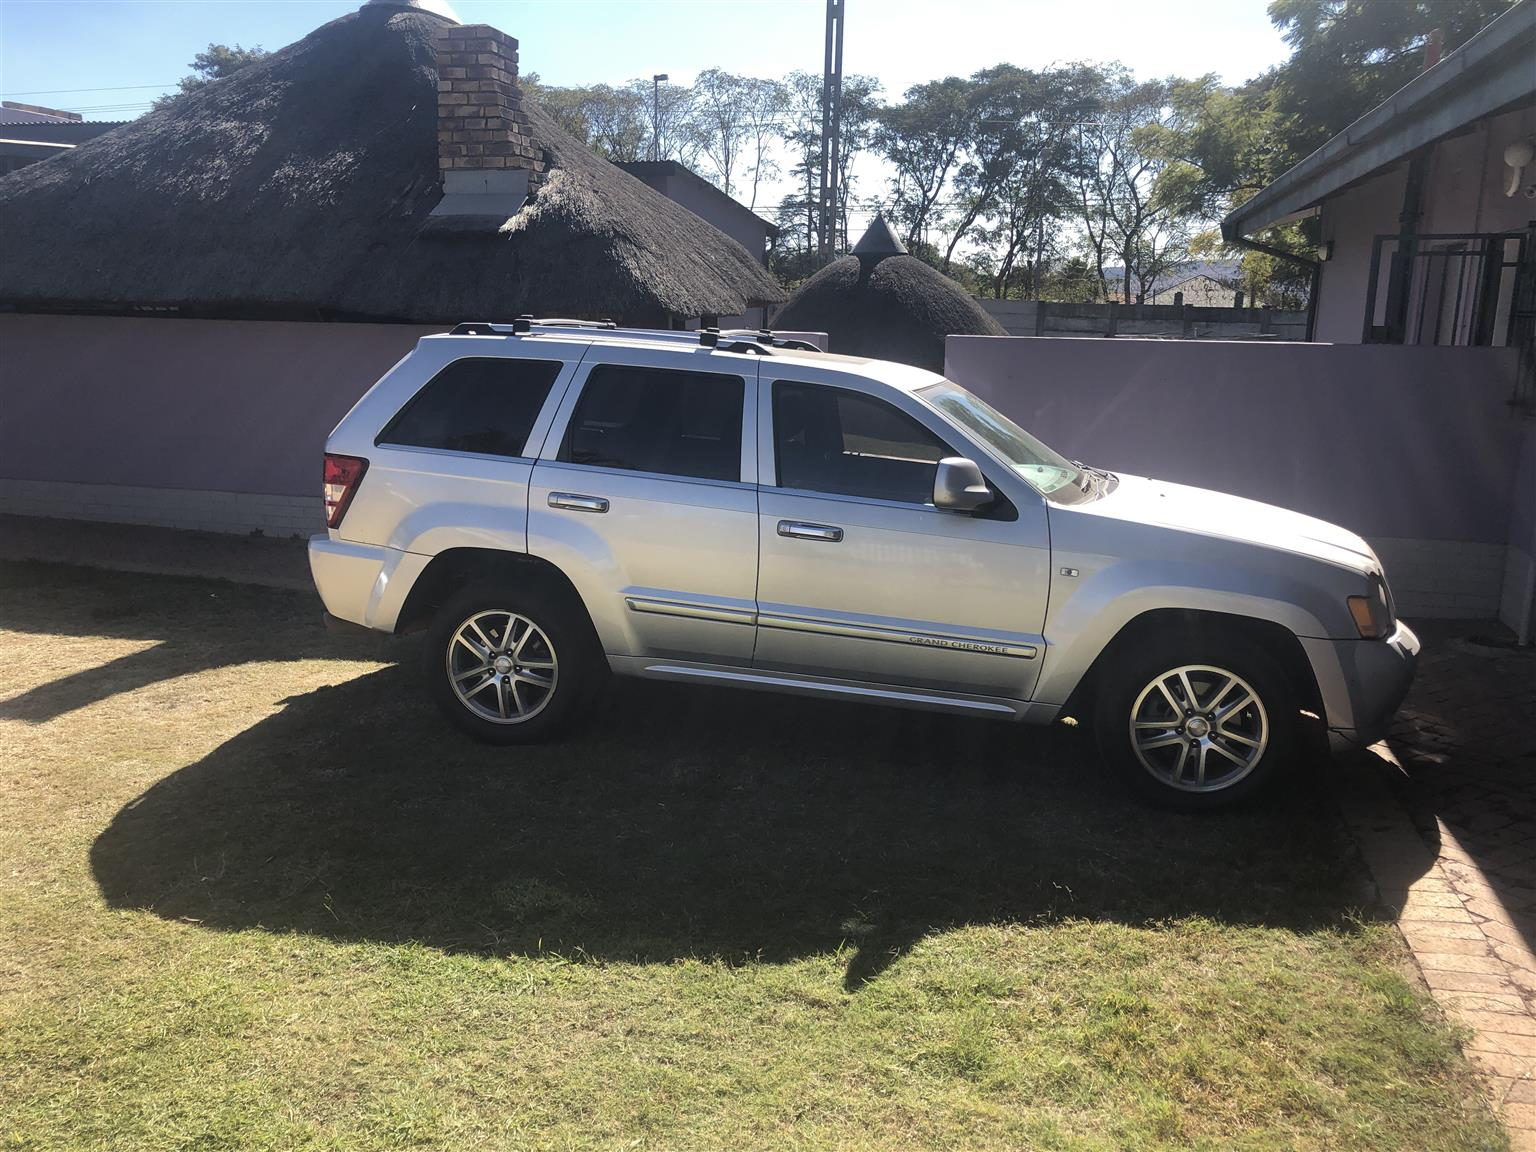 2010 Jeep Grand Cherokee 5 7l Overland Off Road Adventure Ii Junk Mail